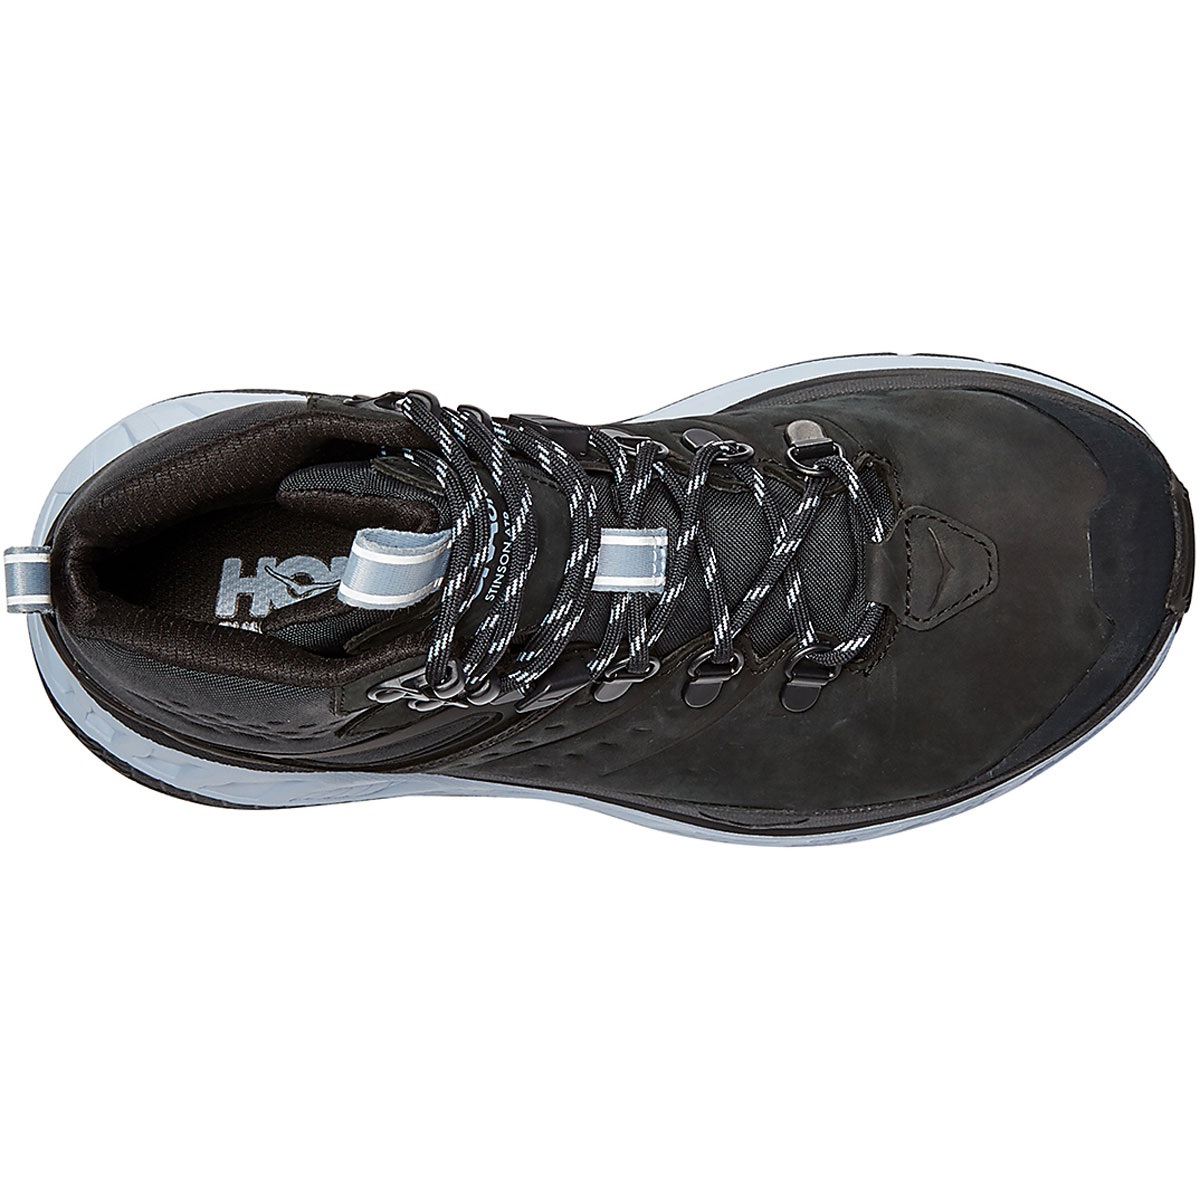 Women's Hoka One One Stinson Mid Gore-Tex Trail Running Shoe - Color: Anthracite/Heather - Size: 5 - Width: Regular, Anthracite/Heather, large, image 5